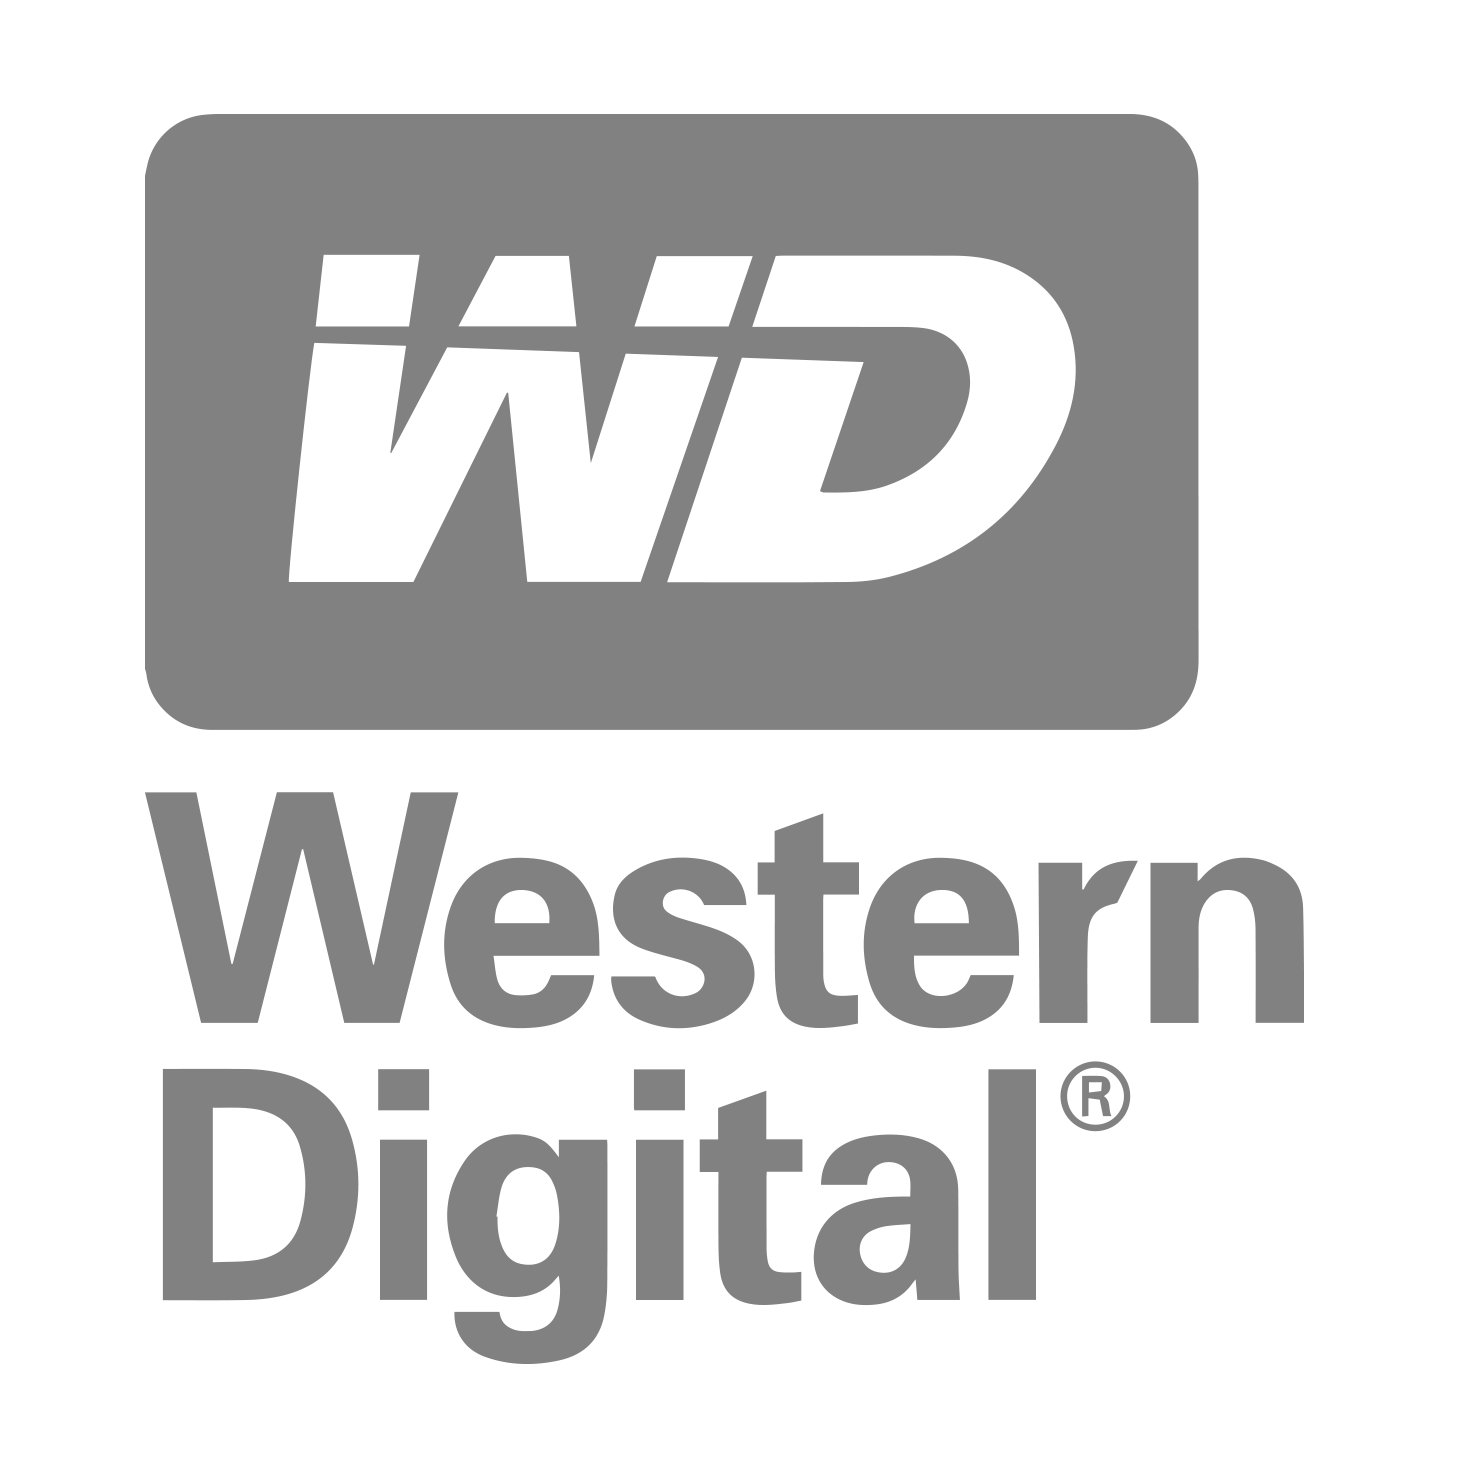 Western Digital_001.png